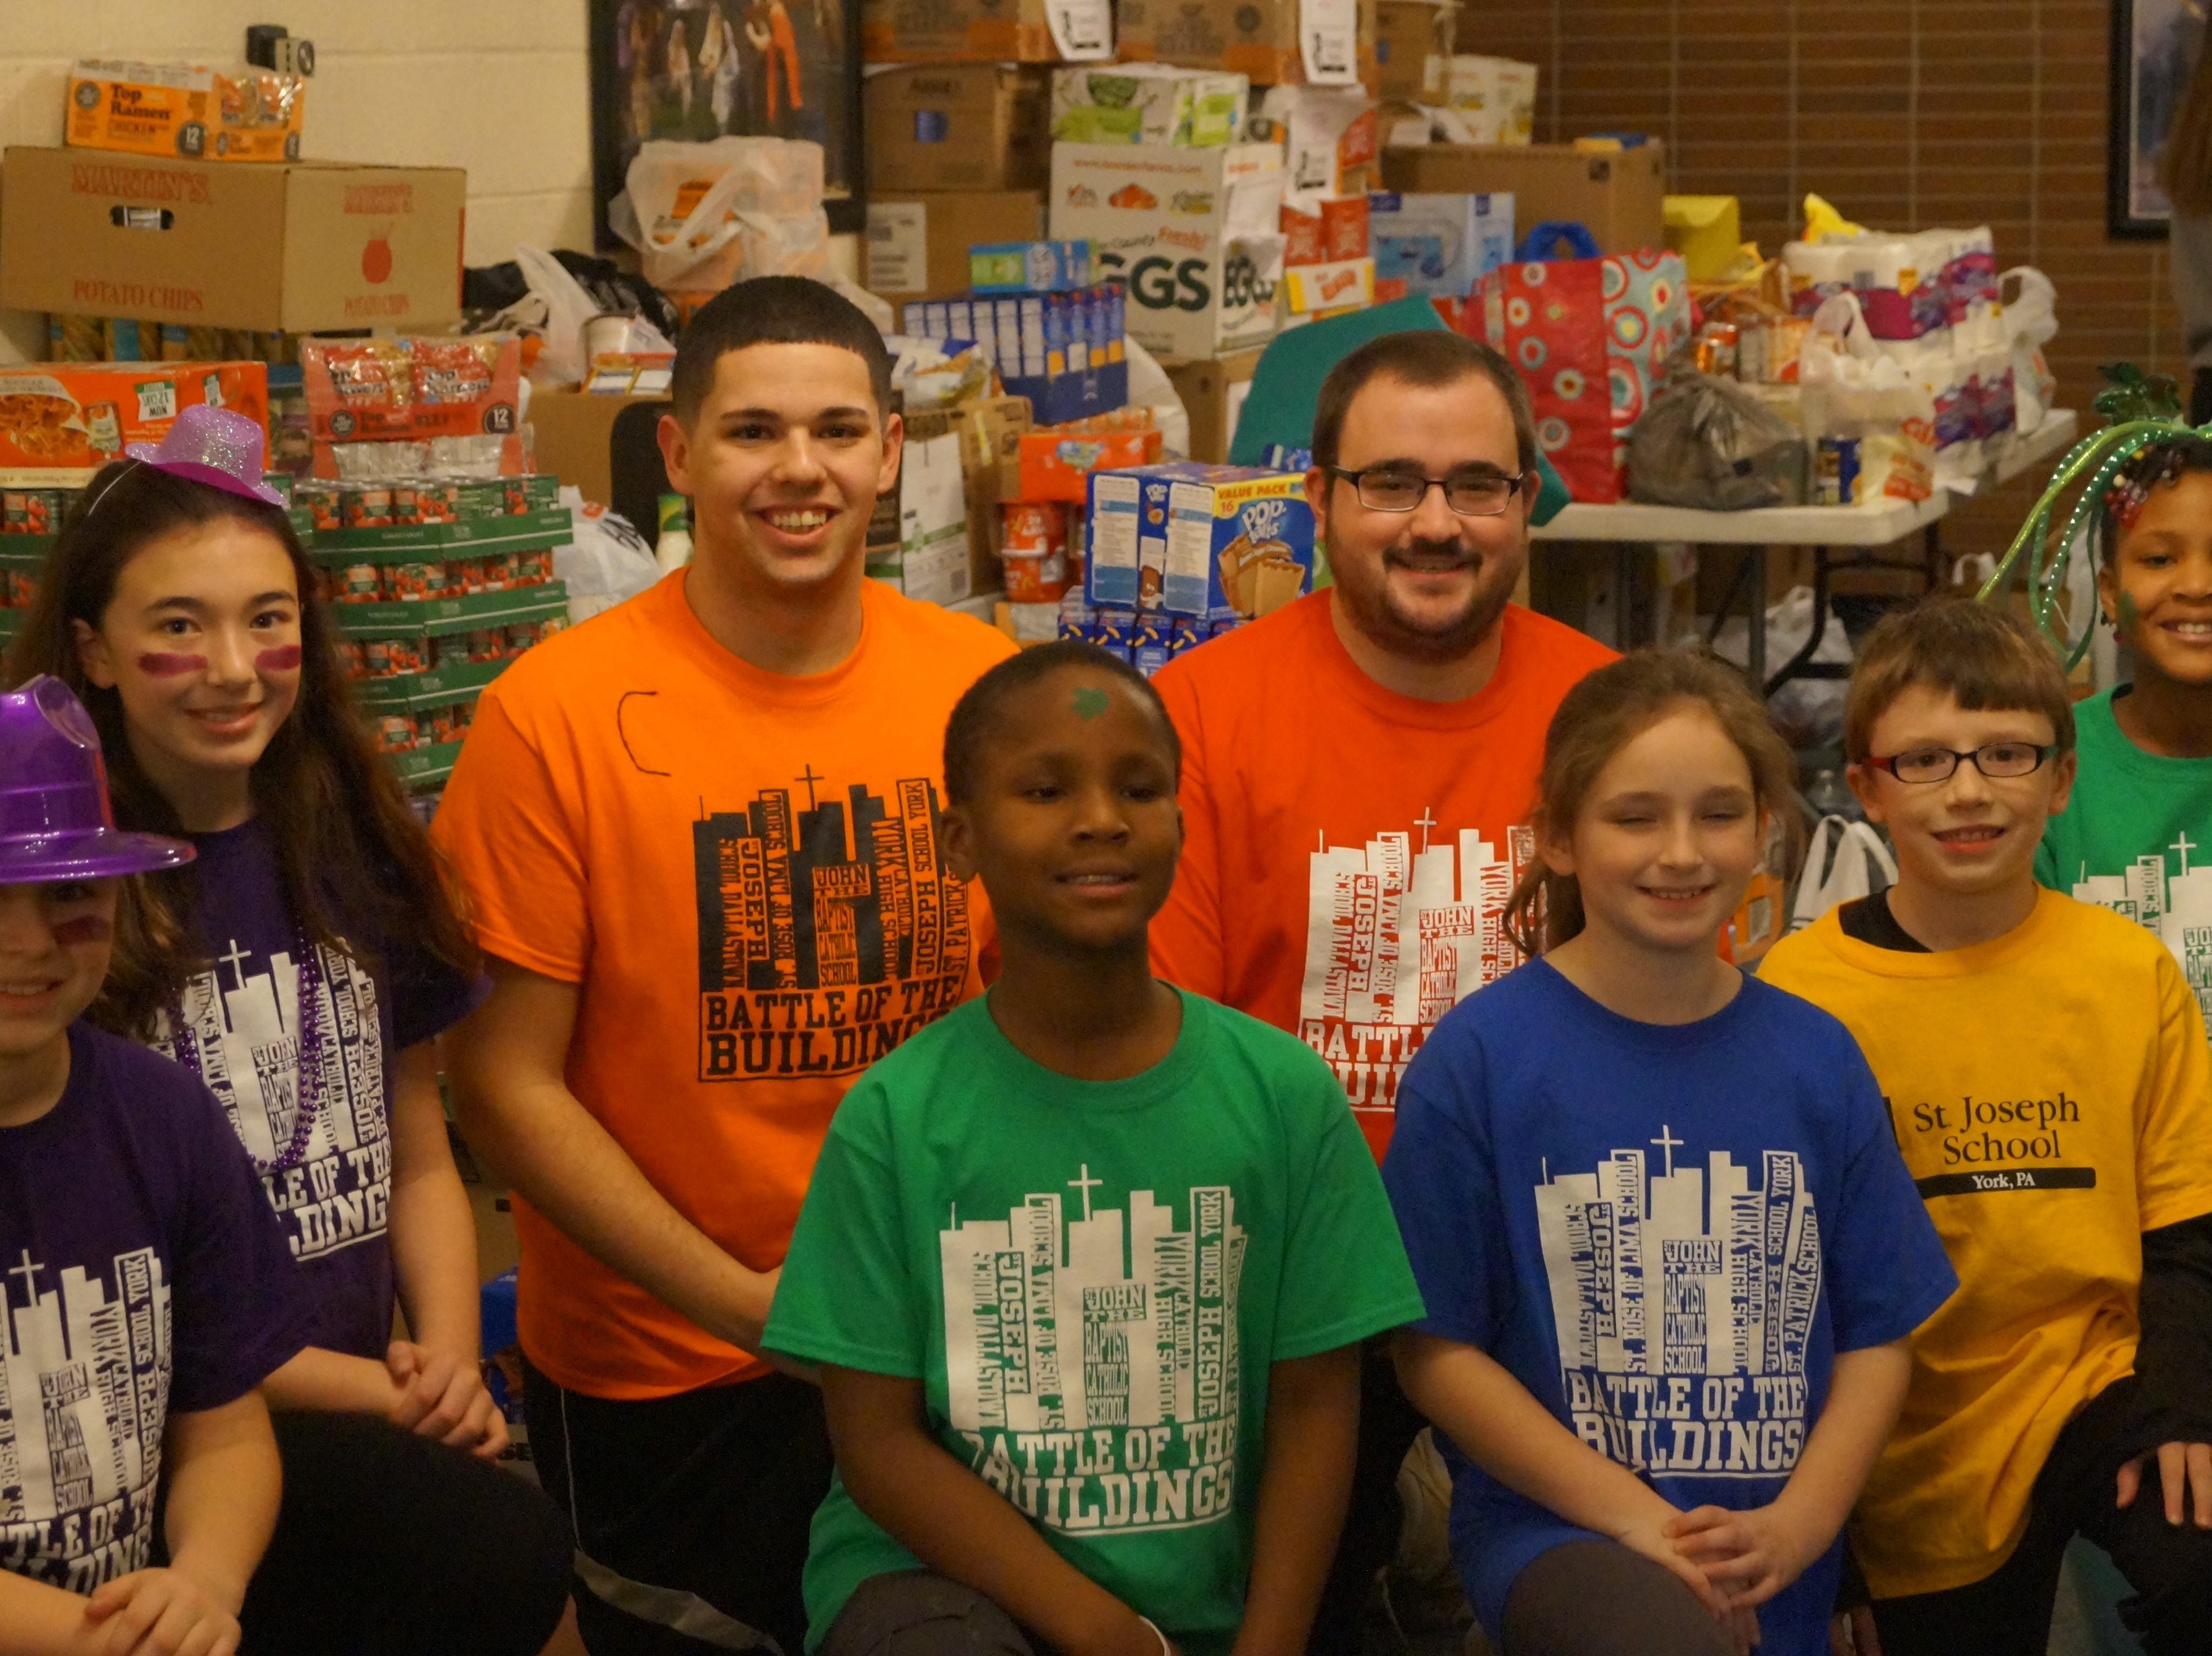 When the Catholic schools in the York area kicked off Catholic School Week, they found a way to help the community while celebrating.  Instead of charging a fee at the annual Battle of the Buildings event, canned goods were collected for the Catholic Harvest Food Pantry.  When all of the counting was complete, the students from St. John the Baptist, St. Joseph Dallastown, St. Joseph York, St. Patrick, St. Rose of Lima, and York Catholic collected over 21,000 items.  Catholic Harvest Food Pantry reported that the collection weighed about 12,500 pounds and was by far the biggest single event donation they had ever received.  Pictured, from left, are representatives from the schools:  Evan Kipple, St. Rose; Emily Werner, St. Rose; Tony Staub, York Catholic; DonGabriel Constant, St. Patrick; Josh Cross, York Catholic; Summer Antkowiak, St. John the Baptist; Kyle Olinger, St. Joseph York and Acilia Constant, St. Patrick. submitted